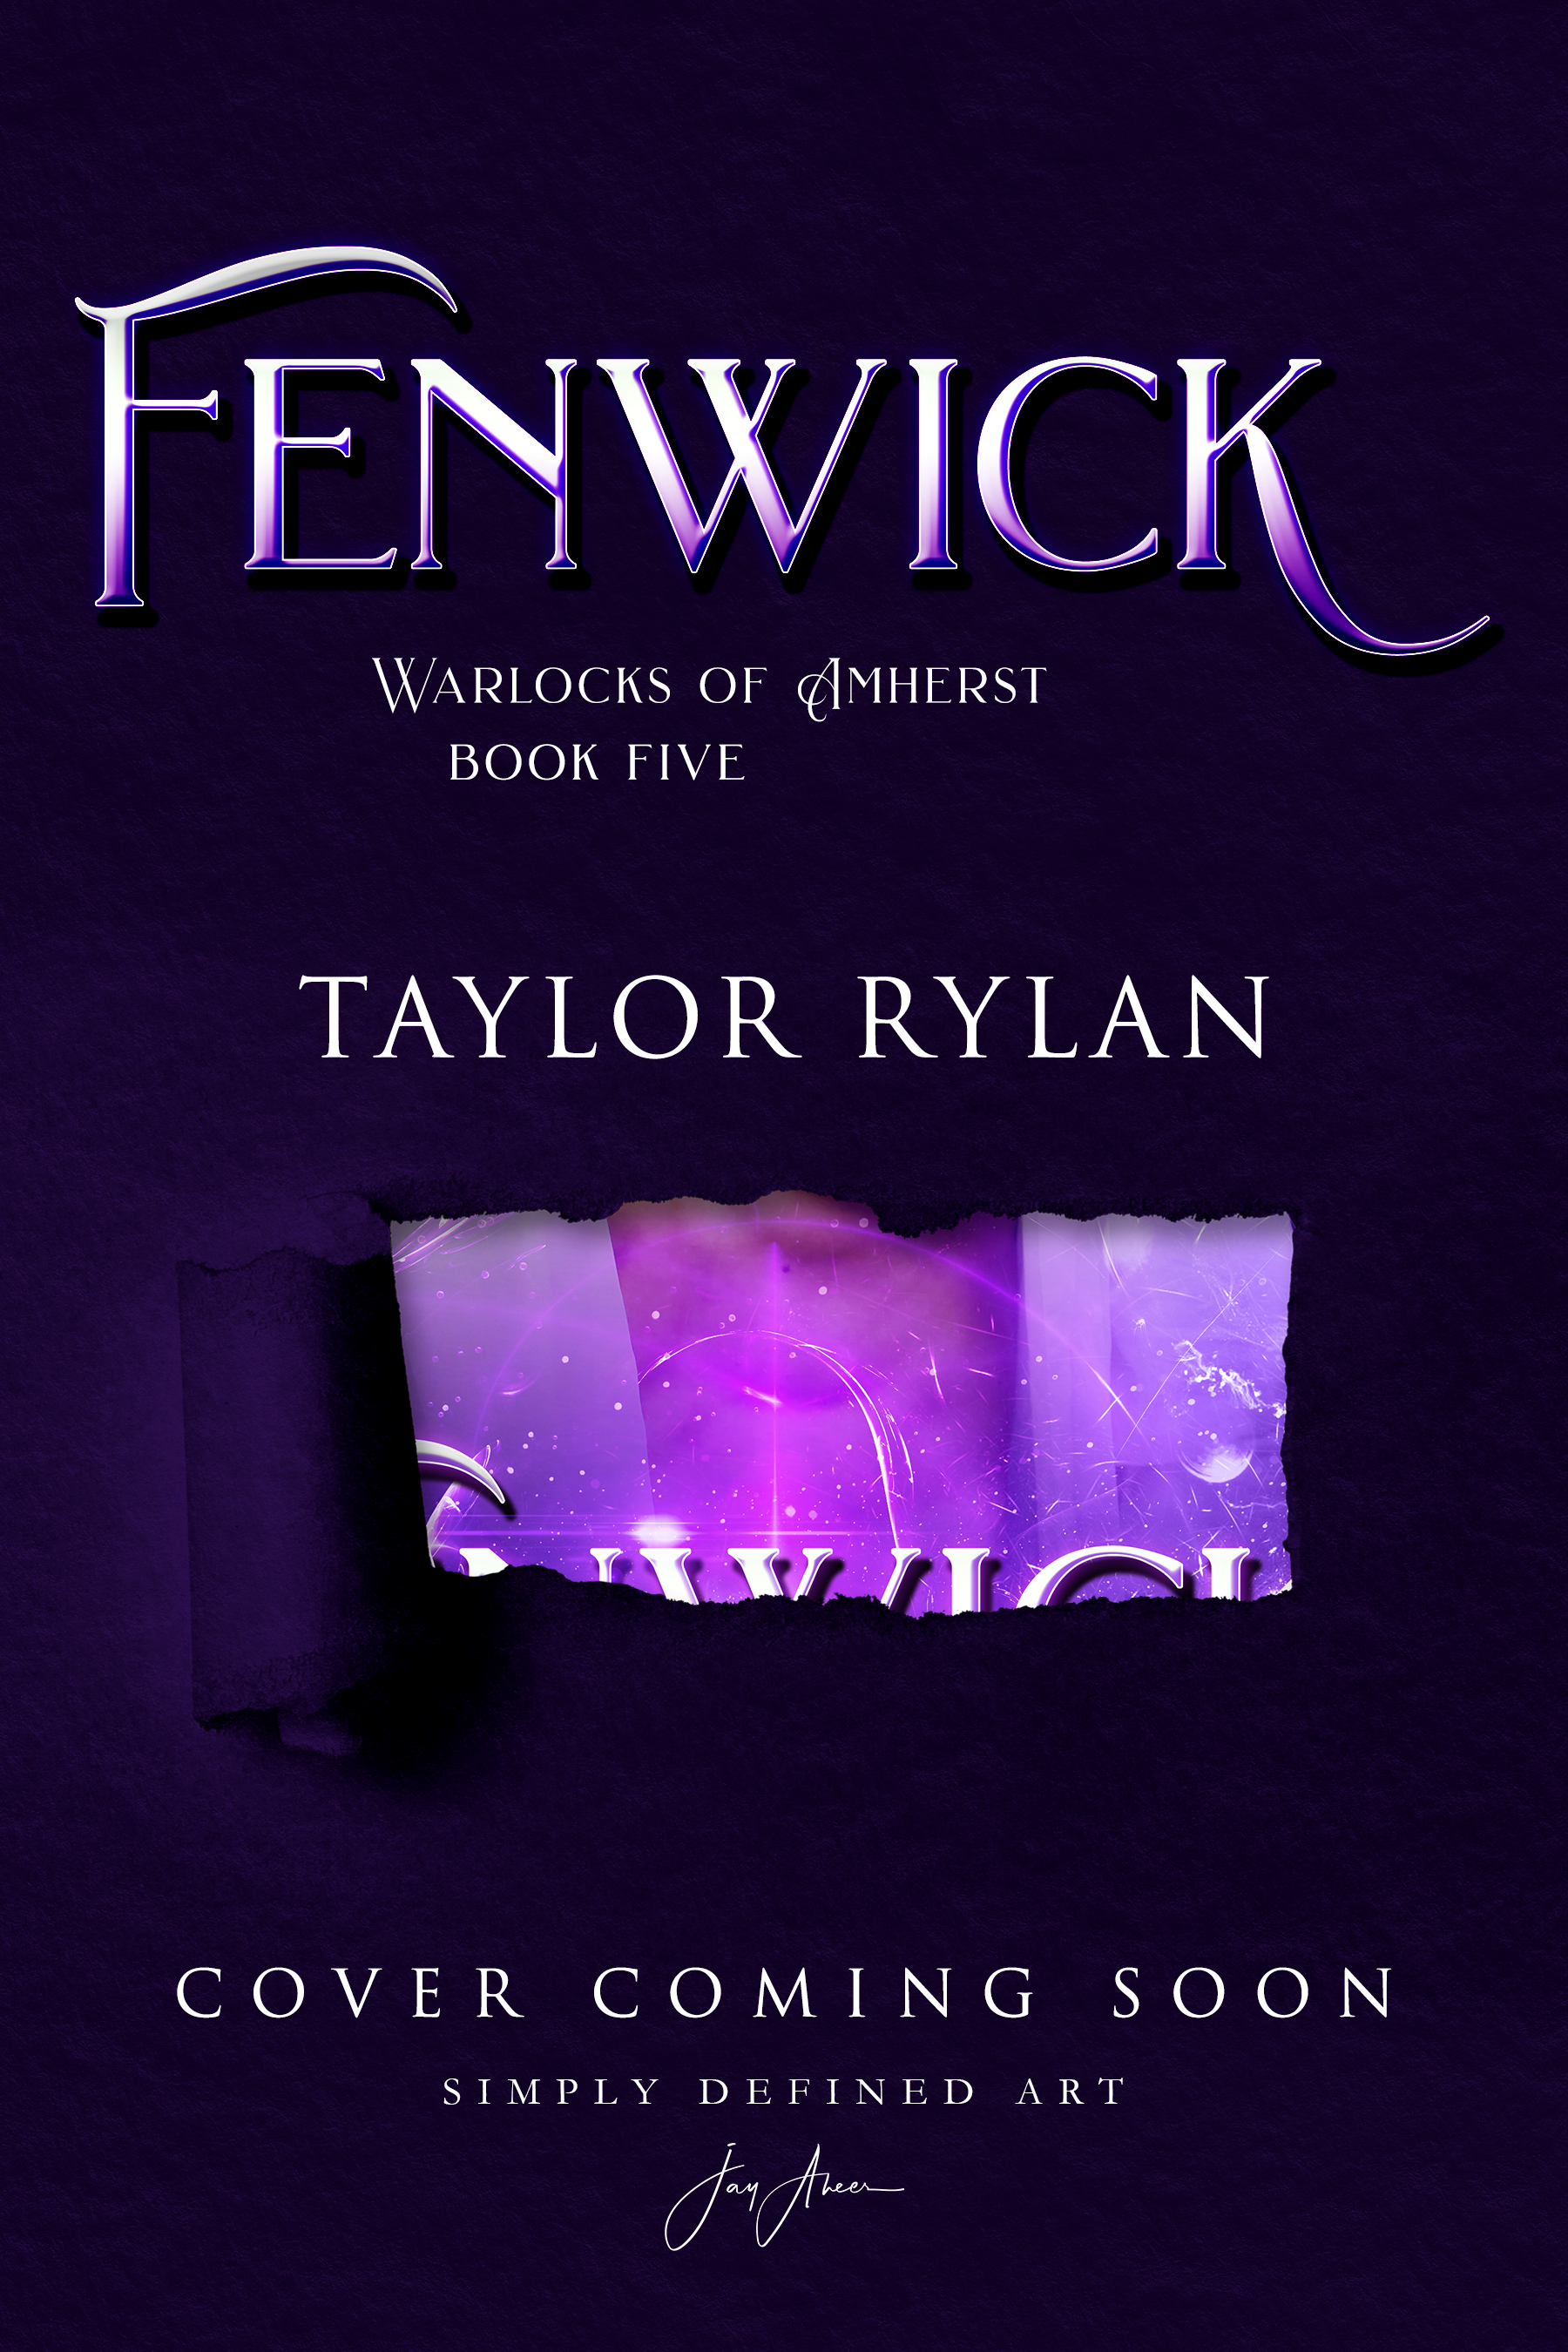 Fenwick: Warlocks of Amherst Book 5